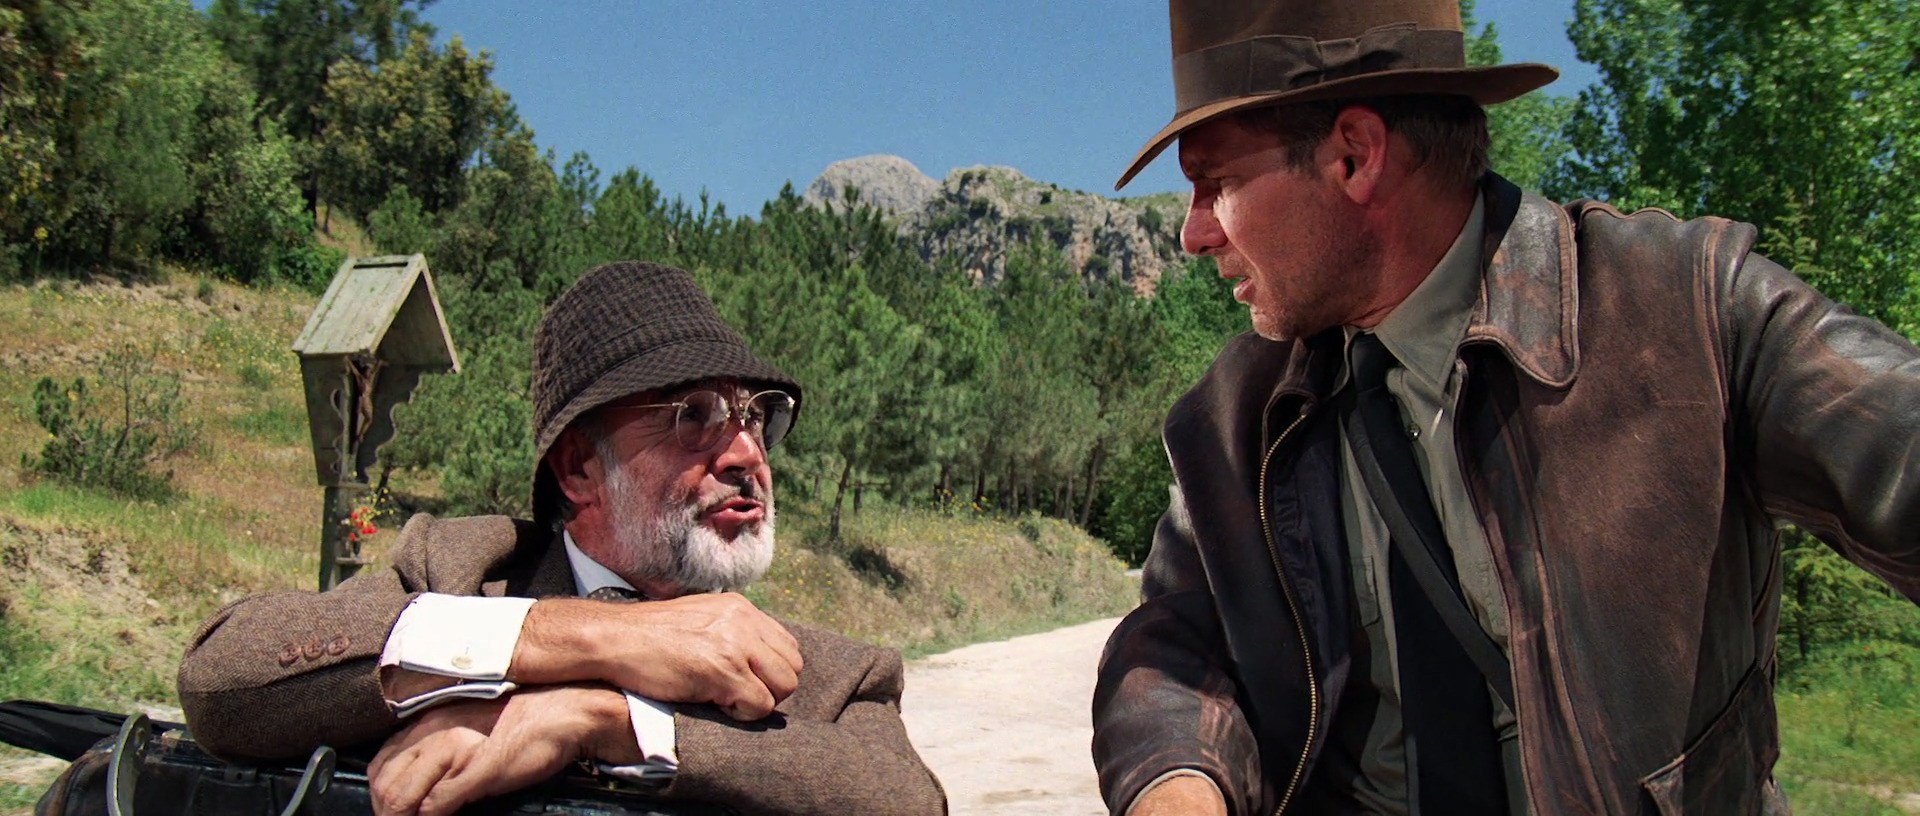 The Man Is The Hat: Last Crusade and Indy's Famous Fedora | From ...